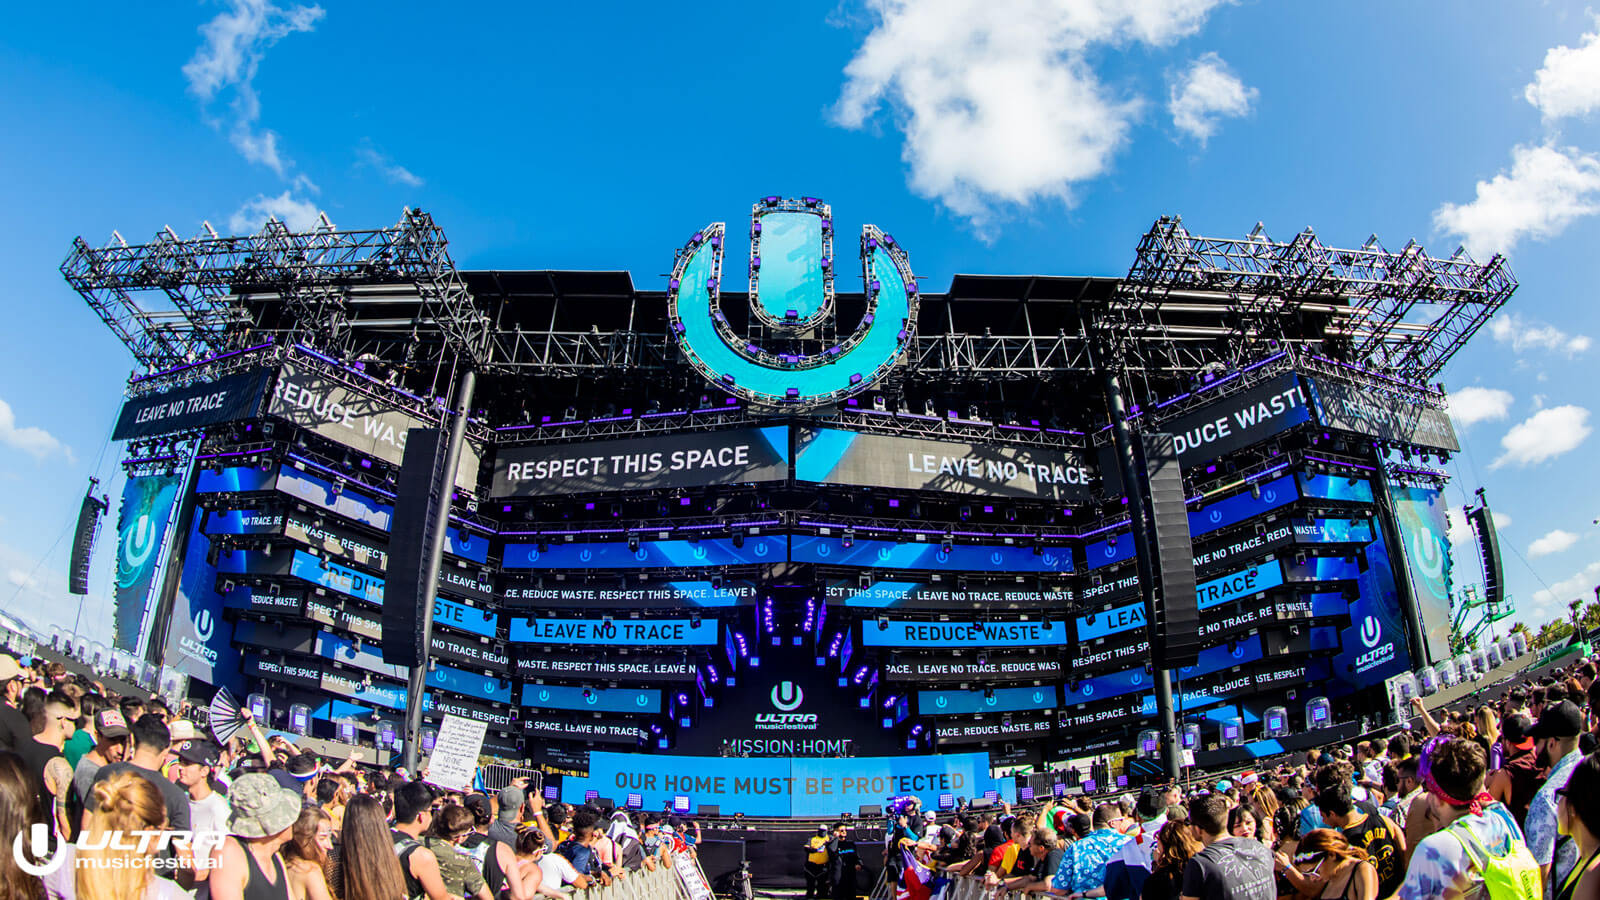 Ultra Music Festival Main Stage with Leave No Trace Visuals